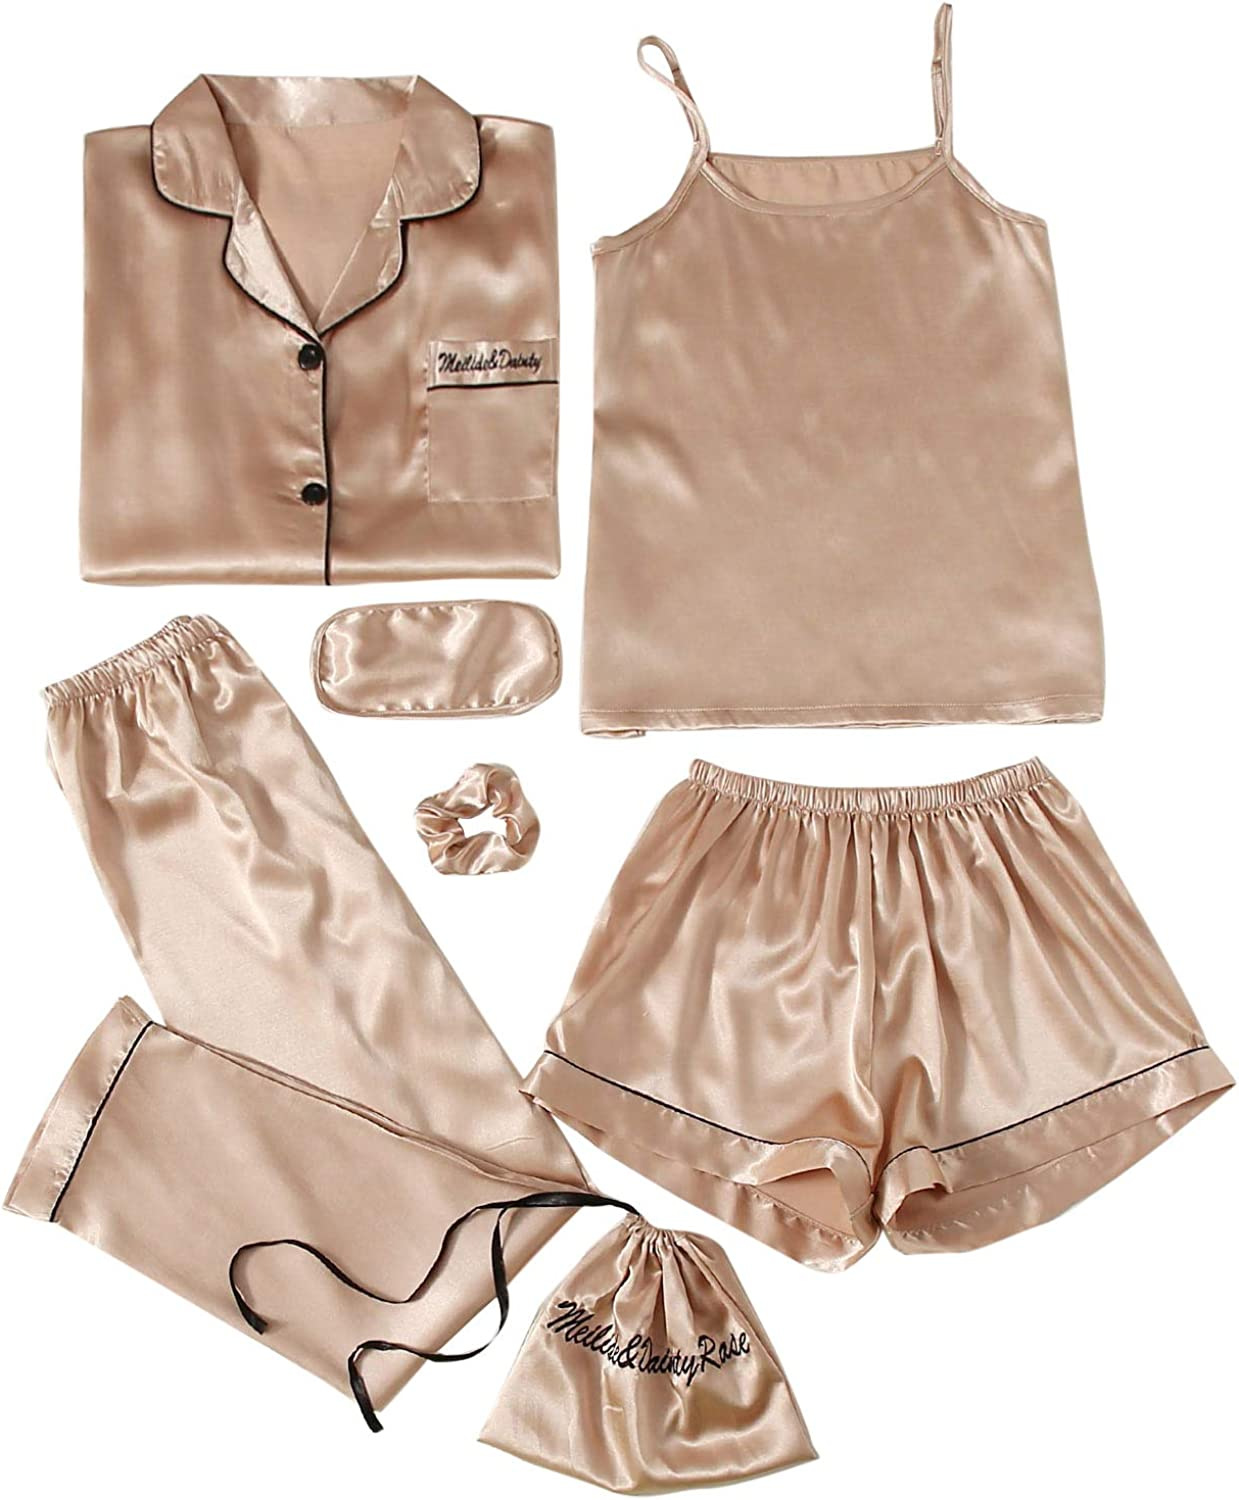 SOLY HUX Popular shop is the lowest price challenge Women's 7pcs Pajama Challenge the lowest price of Japan ☆ Set Satin Top Cami Shirt with and E